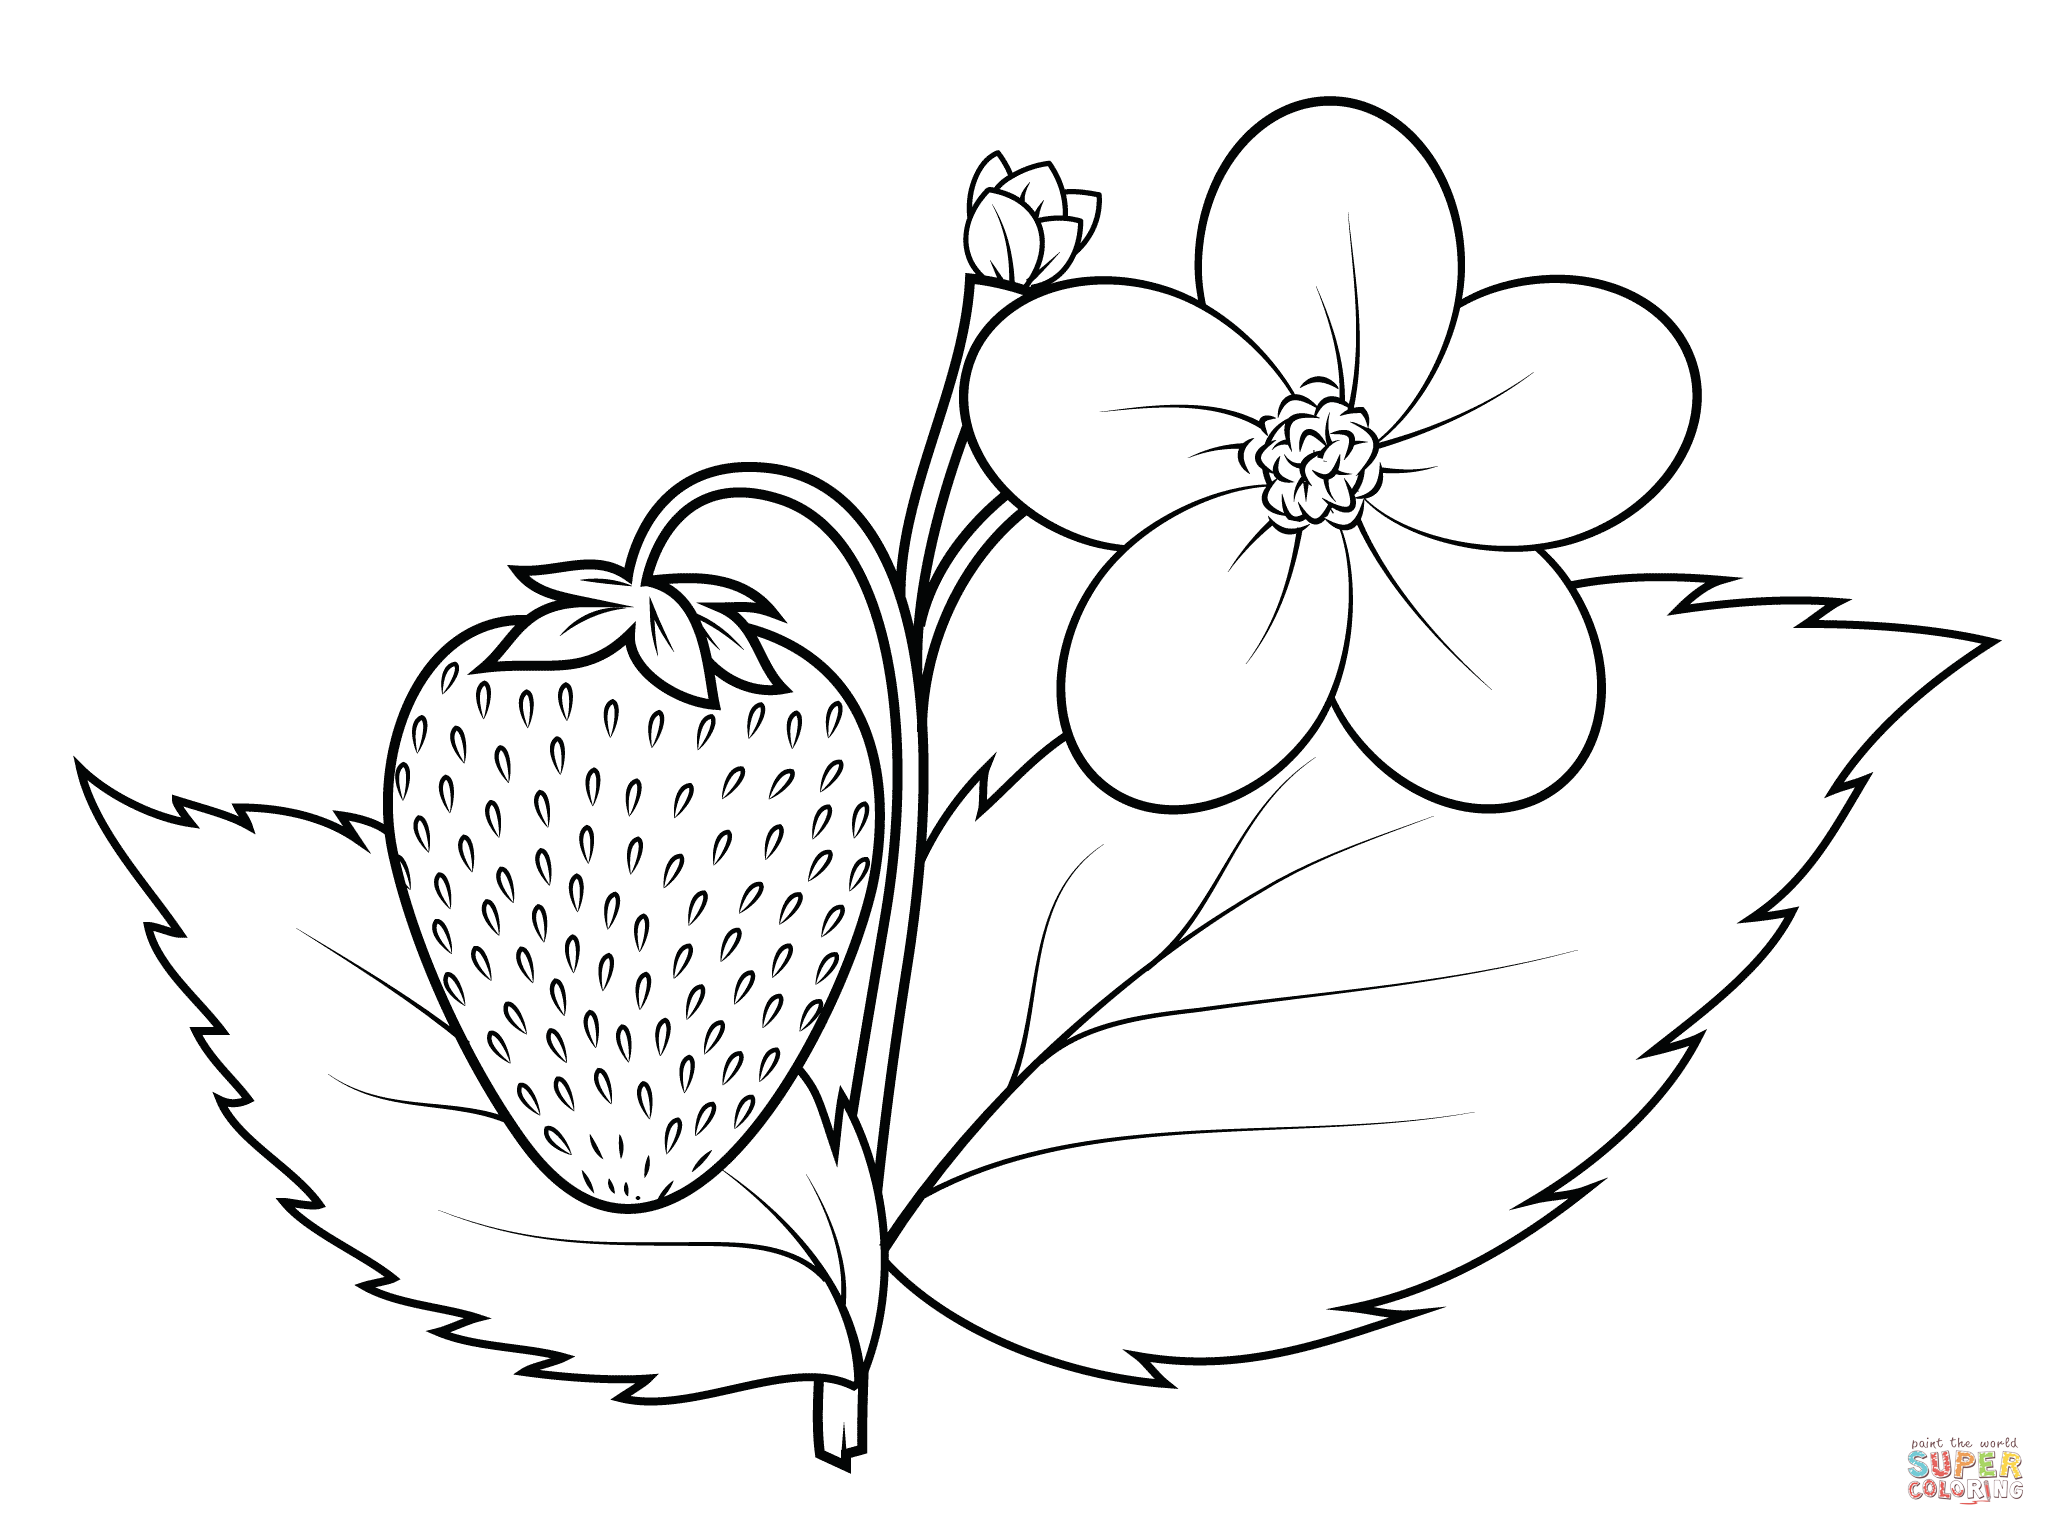 strawberry tree coloring page